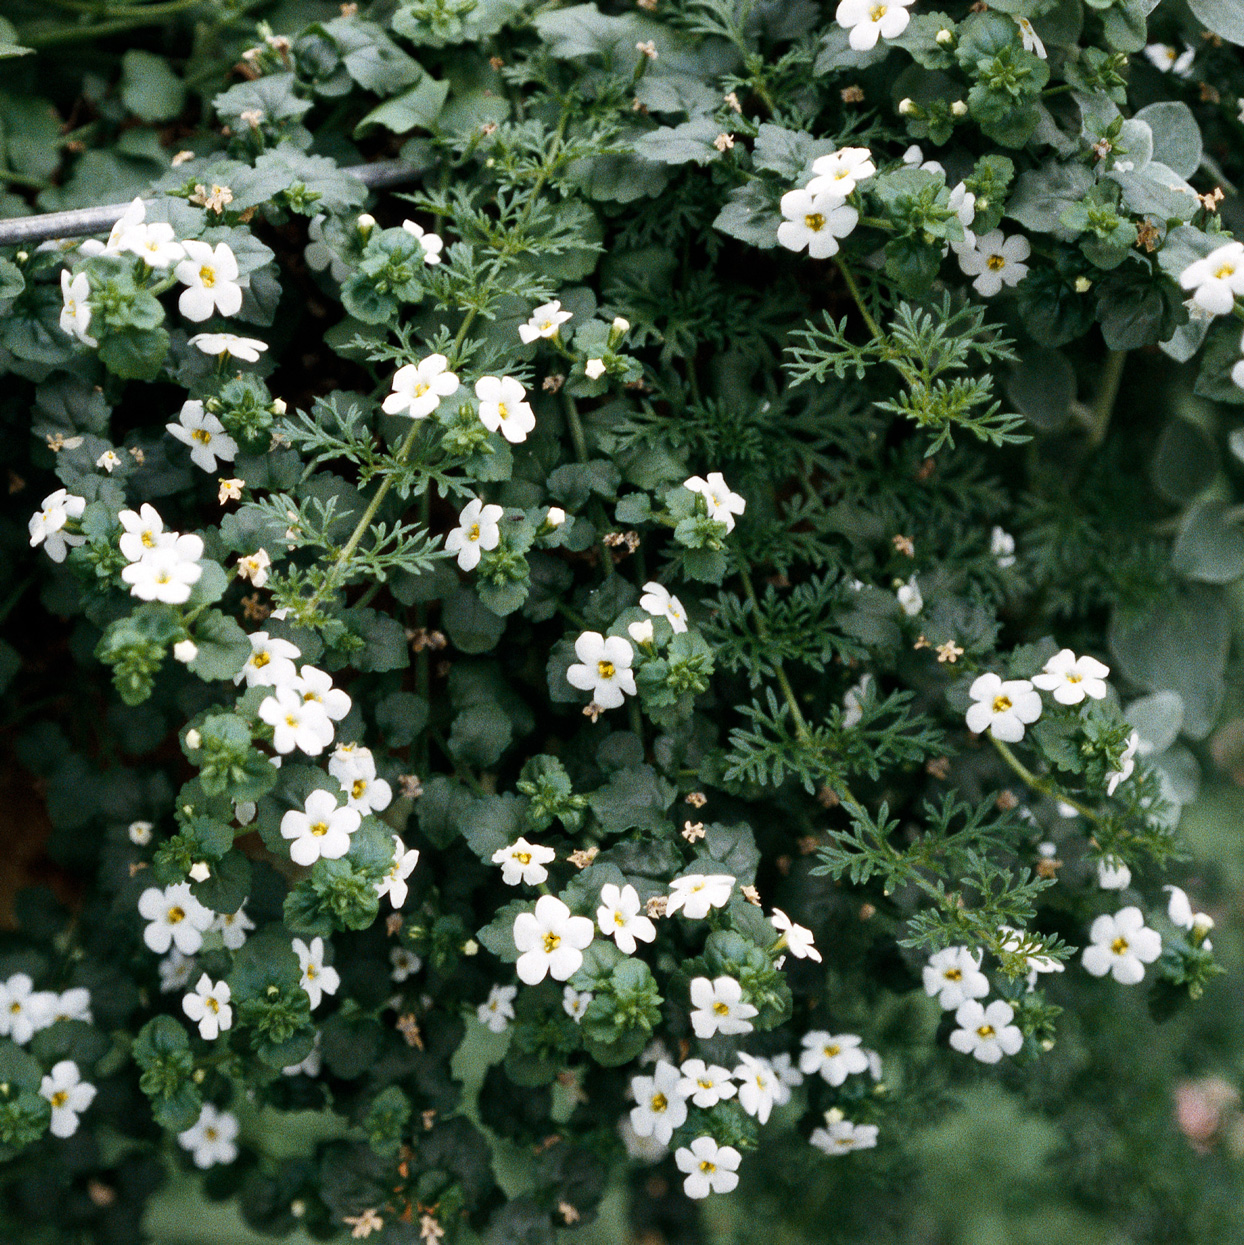 trailing stems of bacopa in bloom